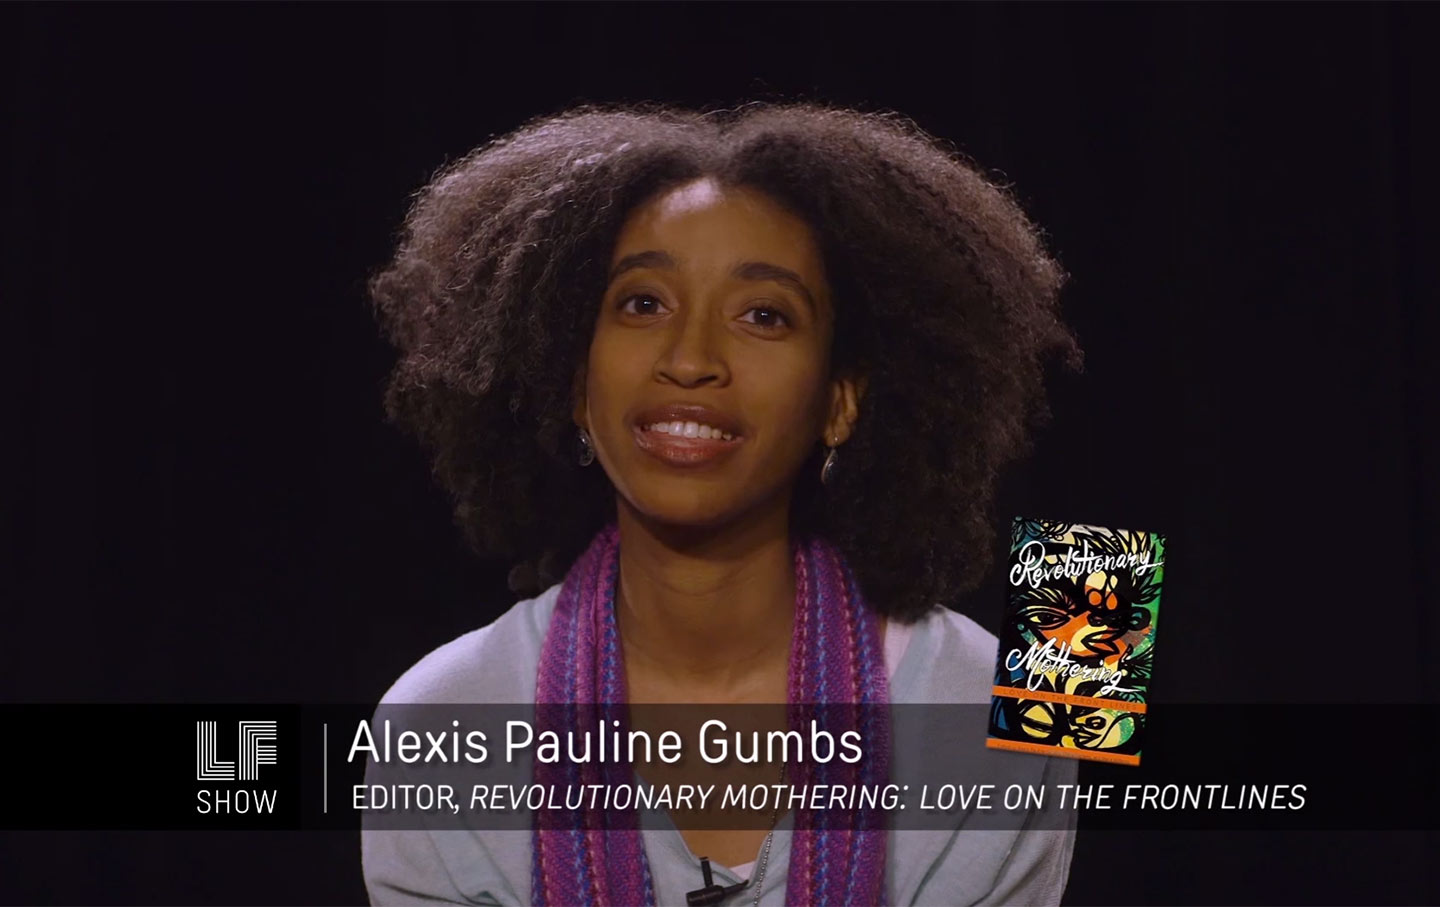 how to understand mother as a verb this mother s day and always  alexis pauline gumbs an editor of revolutionary mothering appears as guest host on the laura flanders show the laura flanders show